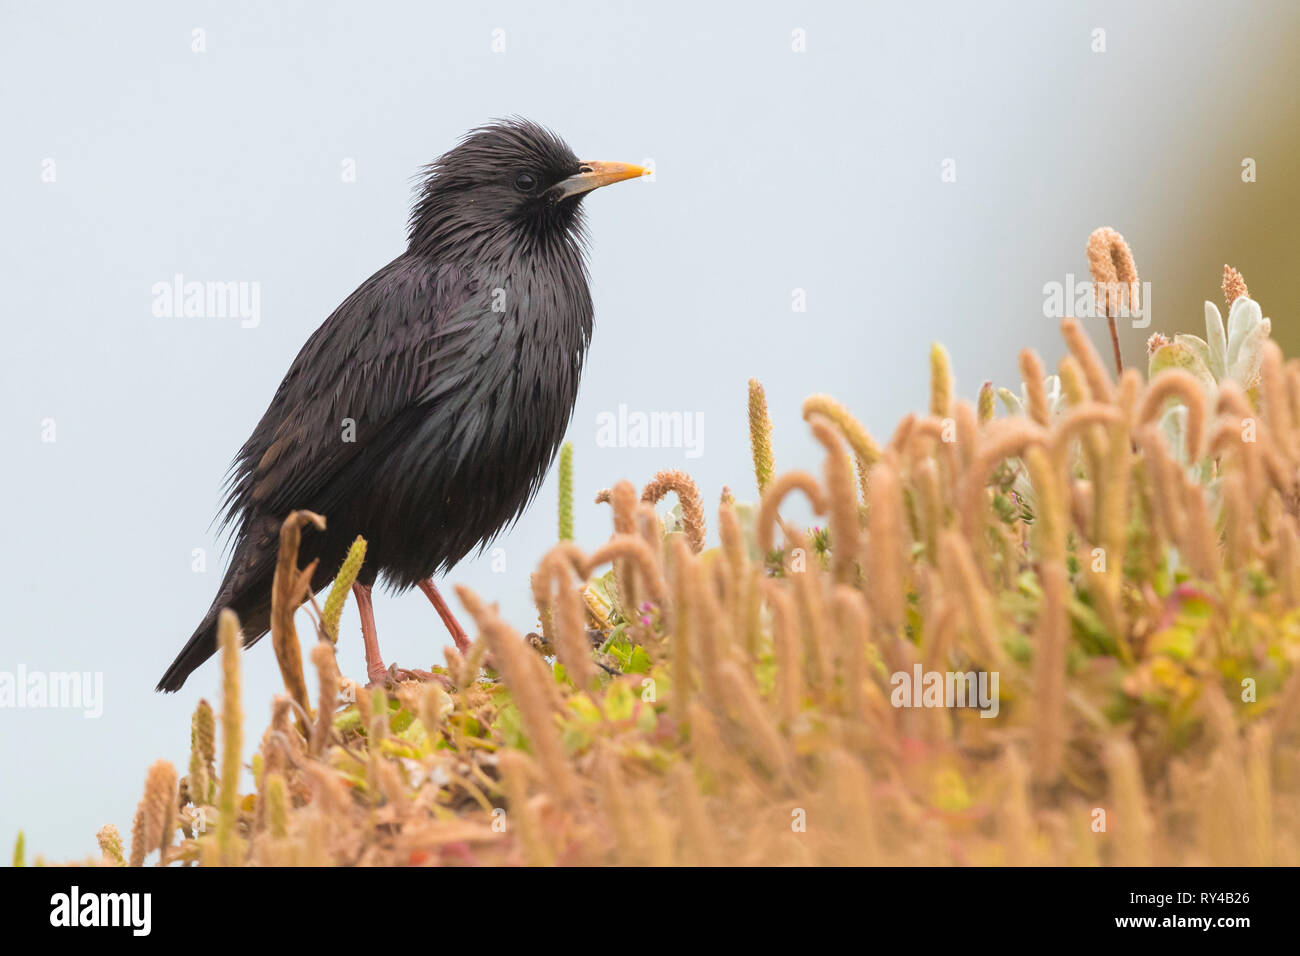 Spotless Starling (Sturnus unicolor), adult standing on the ground - Stock Image